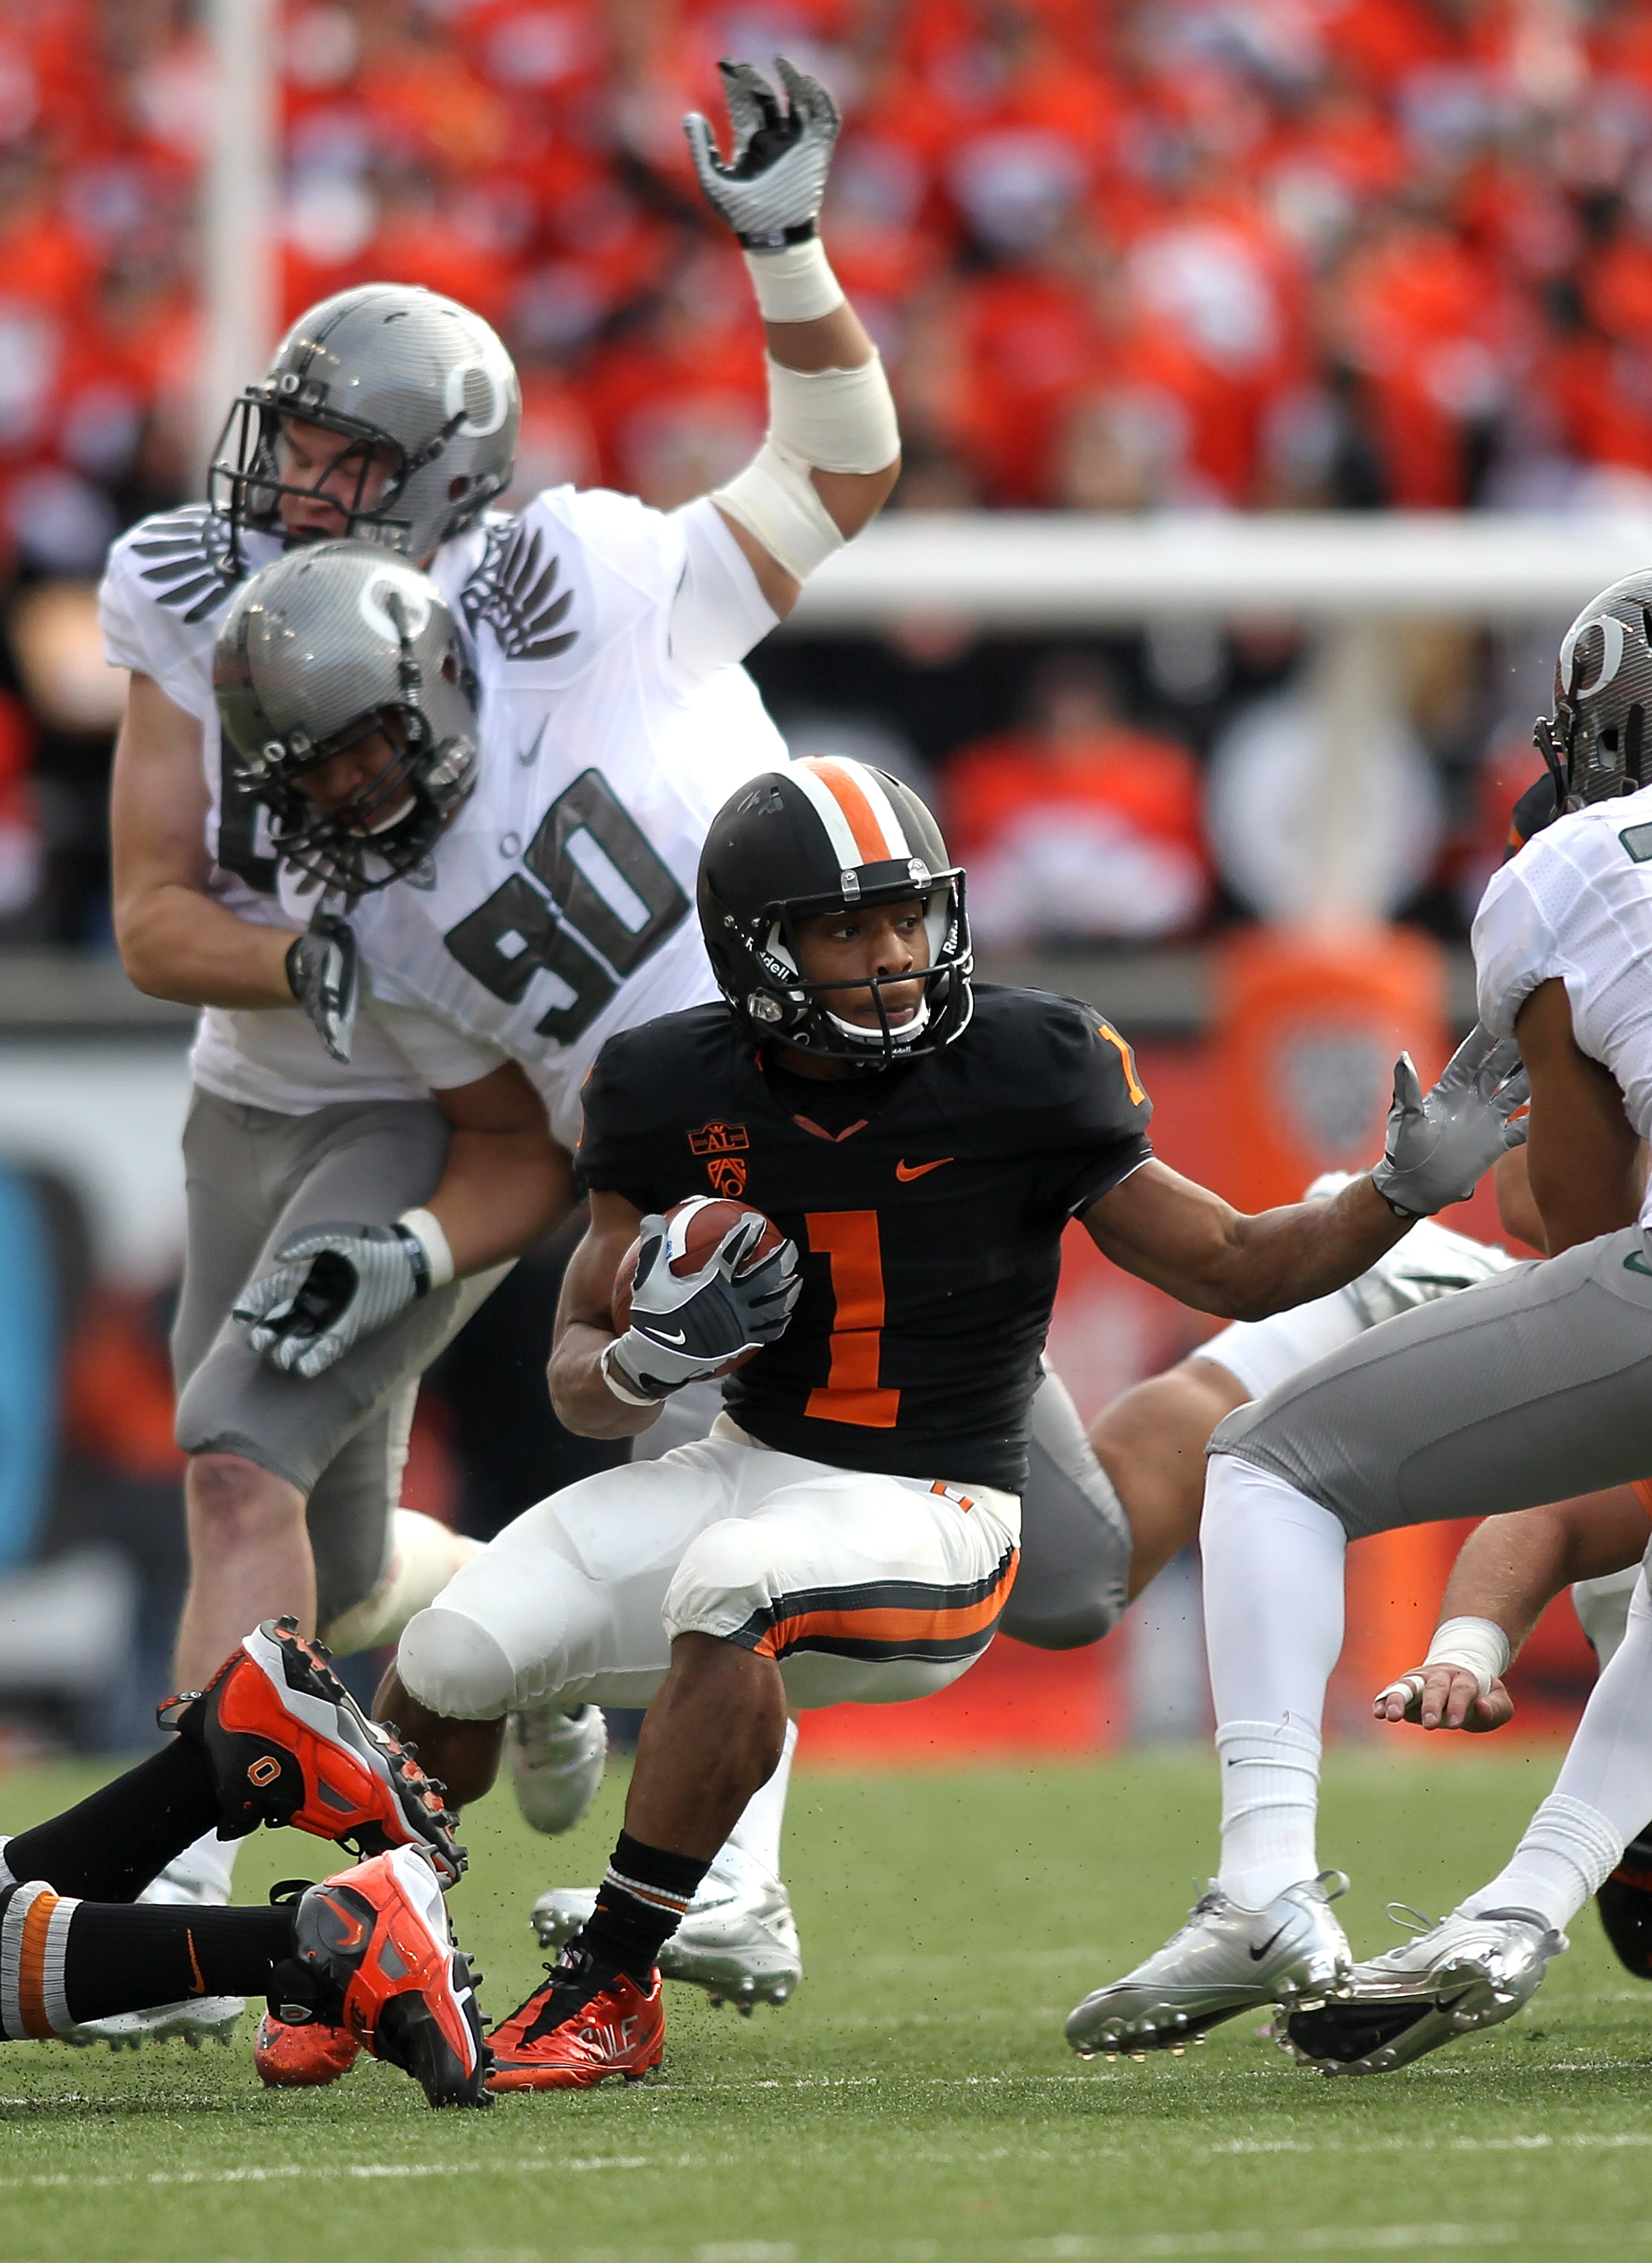 CORVALLIS, OR - DECEMBER 04:  Jacquizz Rodgers #1 of the Oregon State Beavers runs the ball against the Oregon Ducks during the 114th Civil War on December 4, 2010 at the Reser Stadium in Corvallis, Oregon.  (Photo by Jonathan Ferrey/Getty Images)